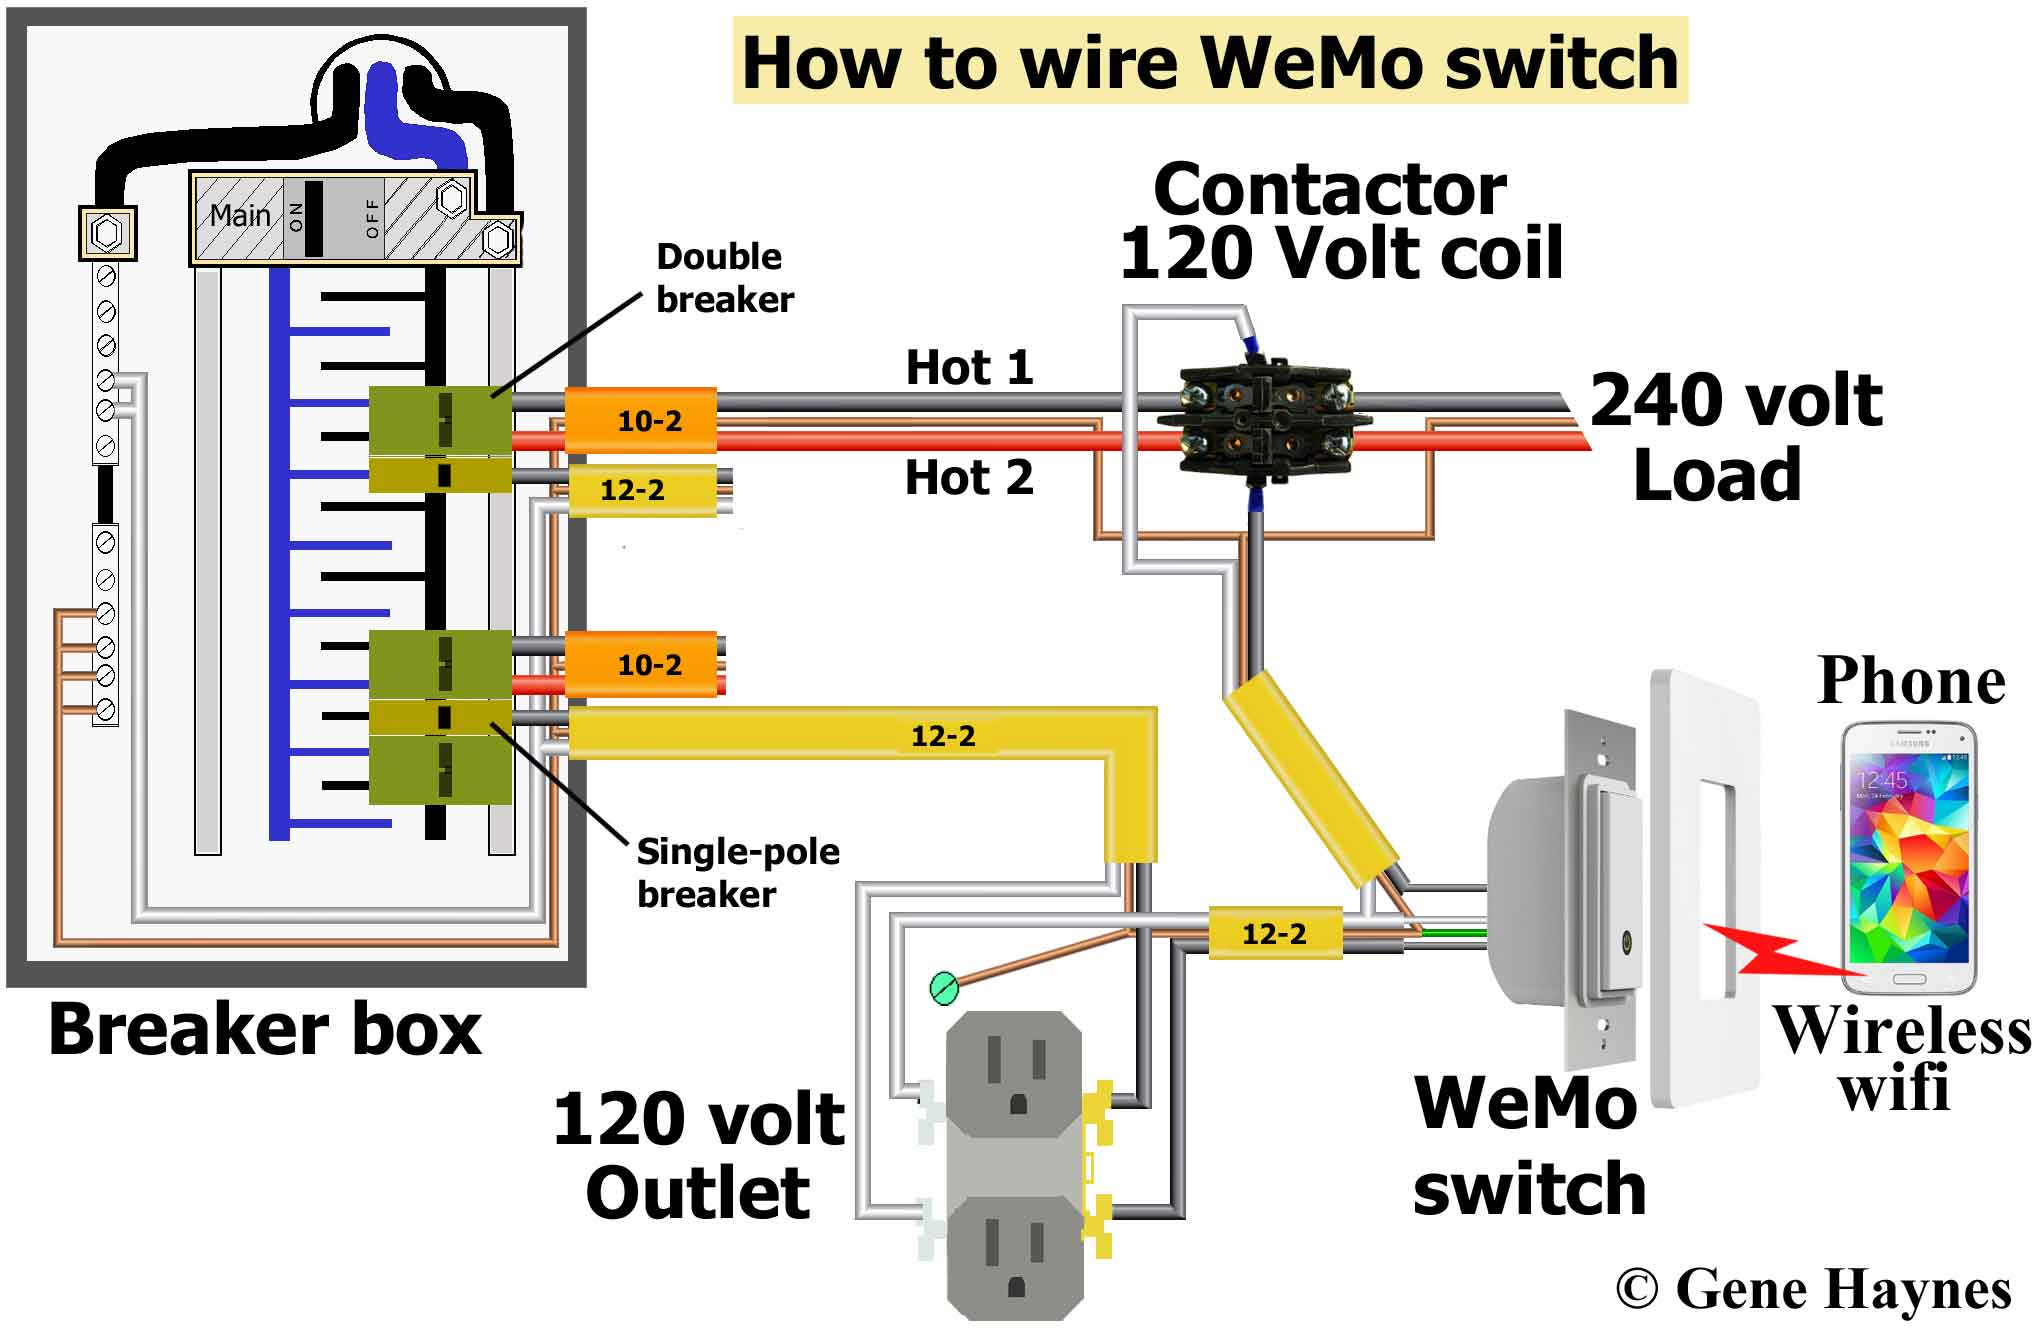 Delay Timer For Motor Or Pump 120volt To 240volt Duplex Starter Wiring Diagram Do Not Use Stranded Wire Under Screw Plates Buy From My Affiliate Links Wemo Switch Contactor With 120 Volt Coil